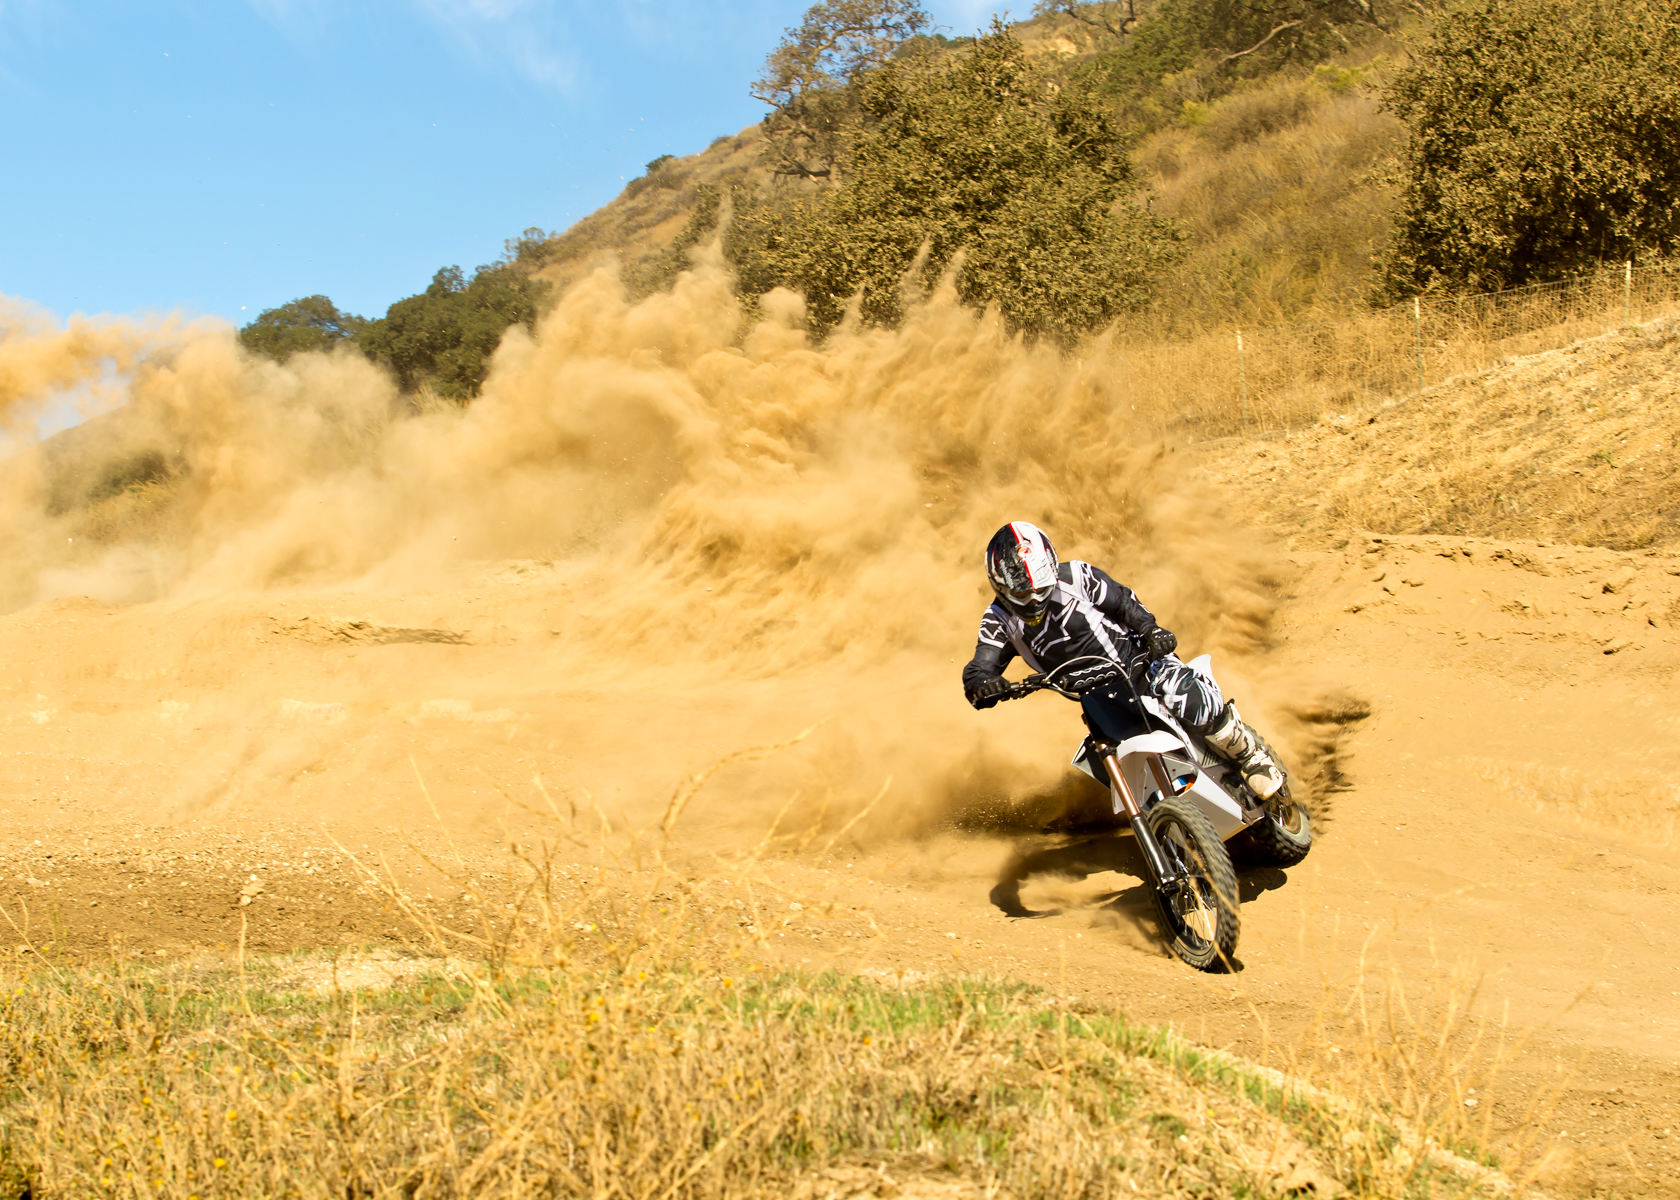 '.2012 Zero MX Electric Motorcycle: On a Dirt Road.'